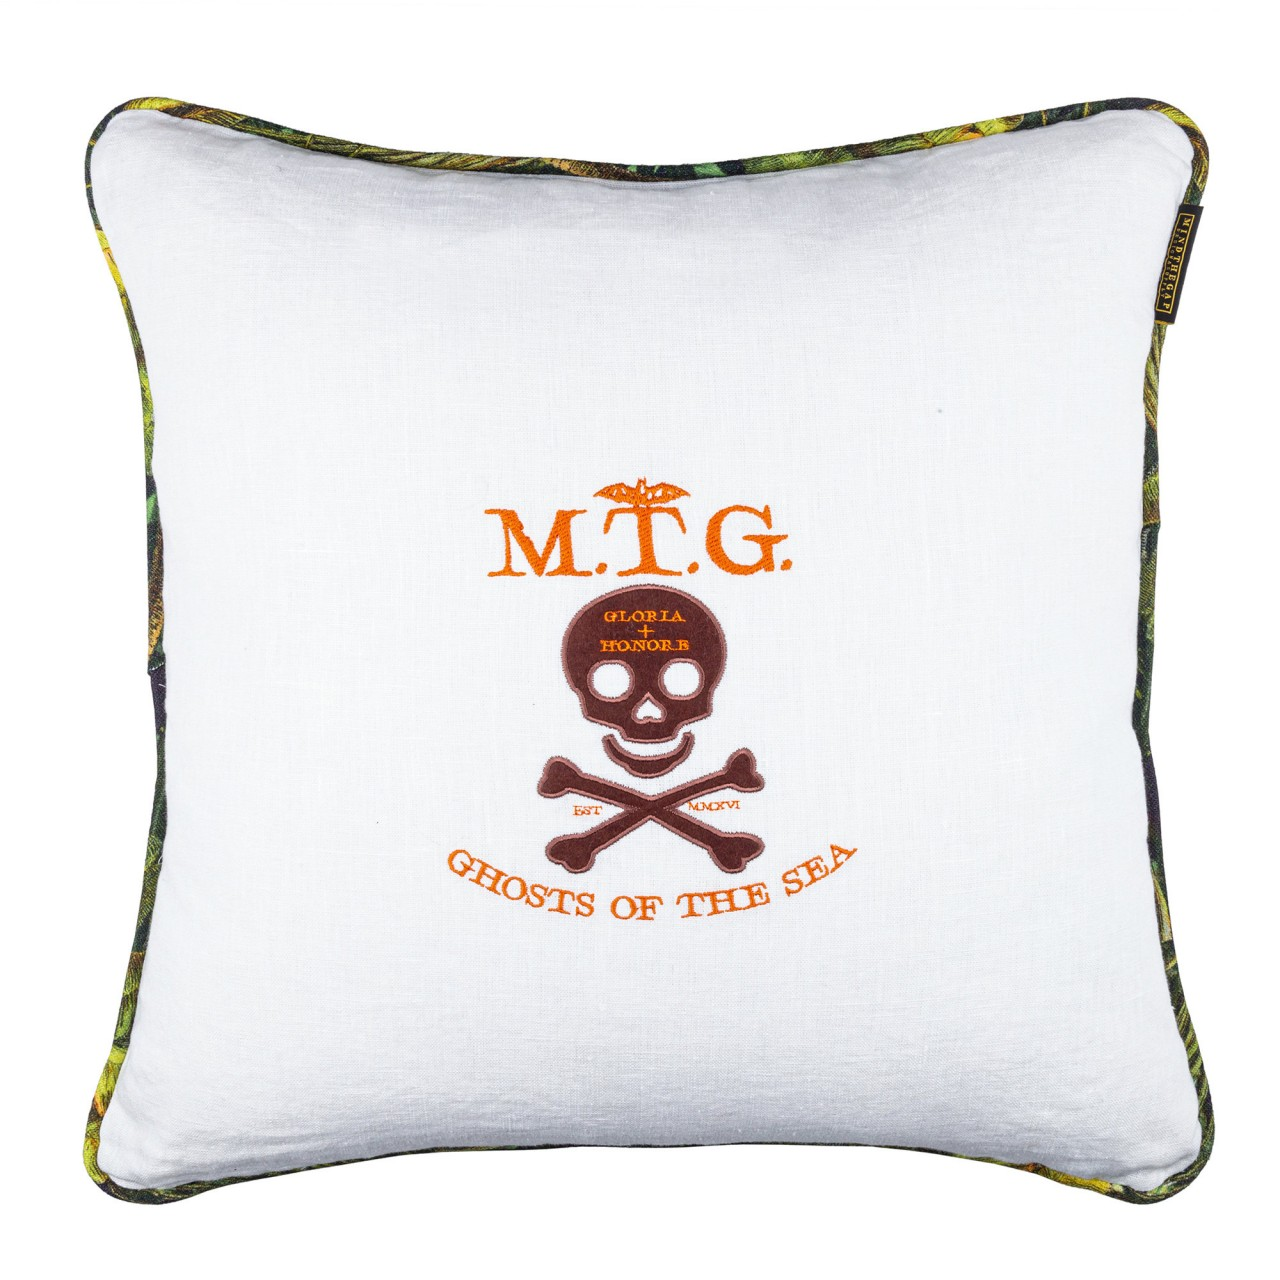 GHOST OF THE SEA Cushion